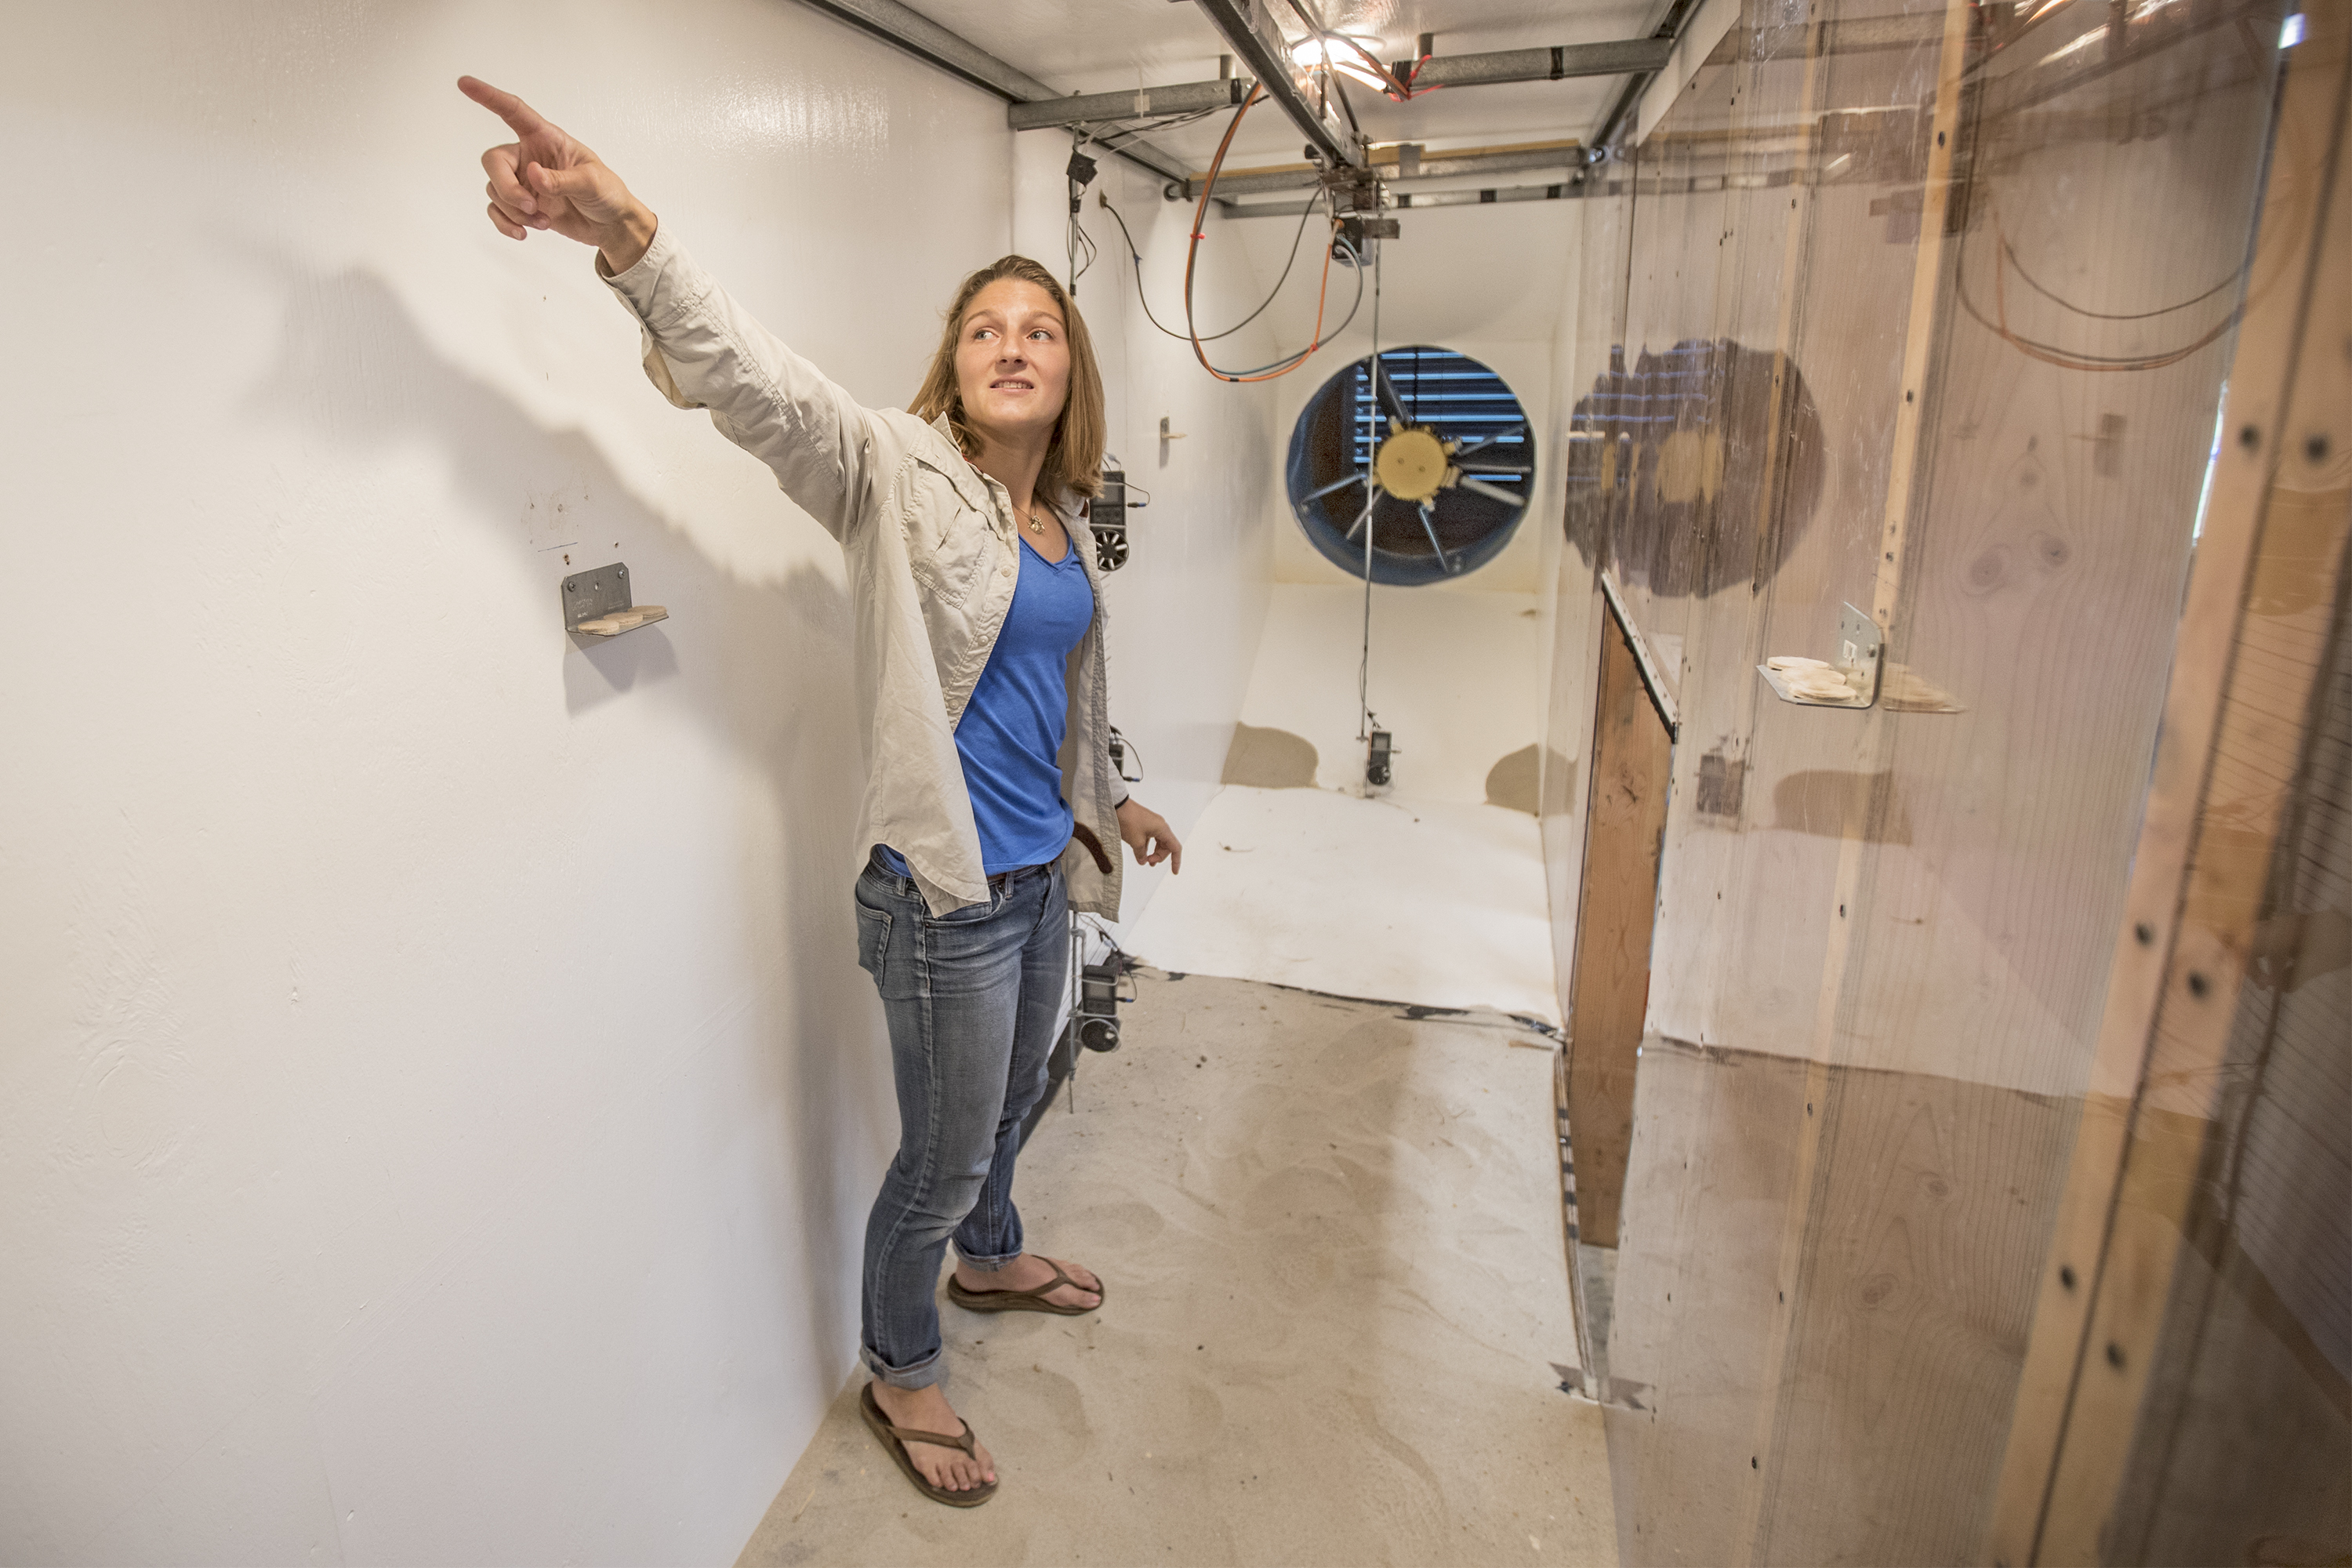 Bianca Charbonneau, a Penn doctorate student, stands inside the wind tunnel she had built at the Ocean County Vocational Technical School in Waretown, N.J. with the money she got from a grant from the Army Corp of Engineers.